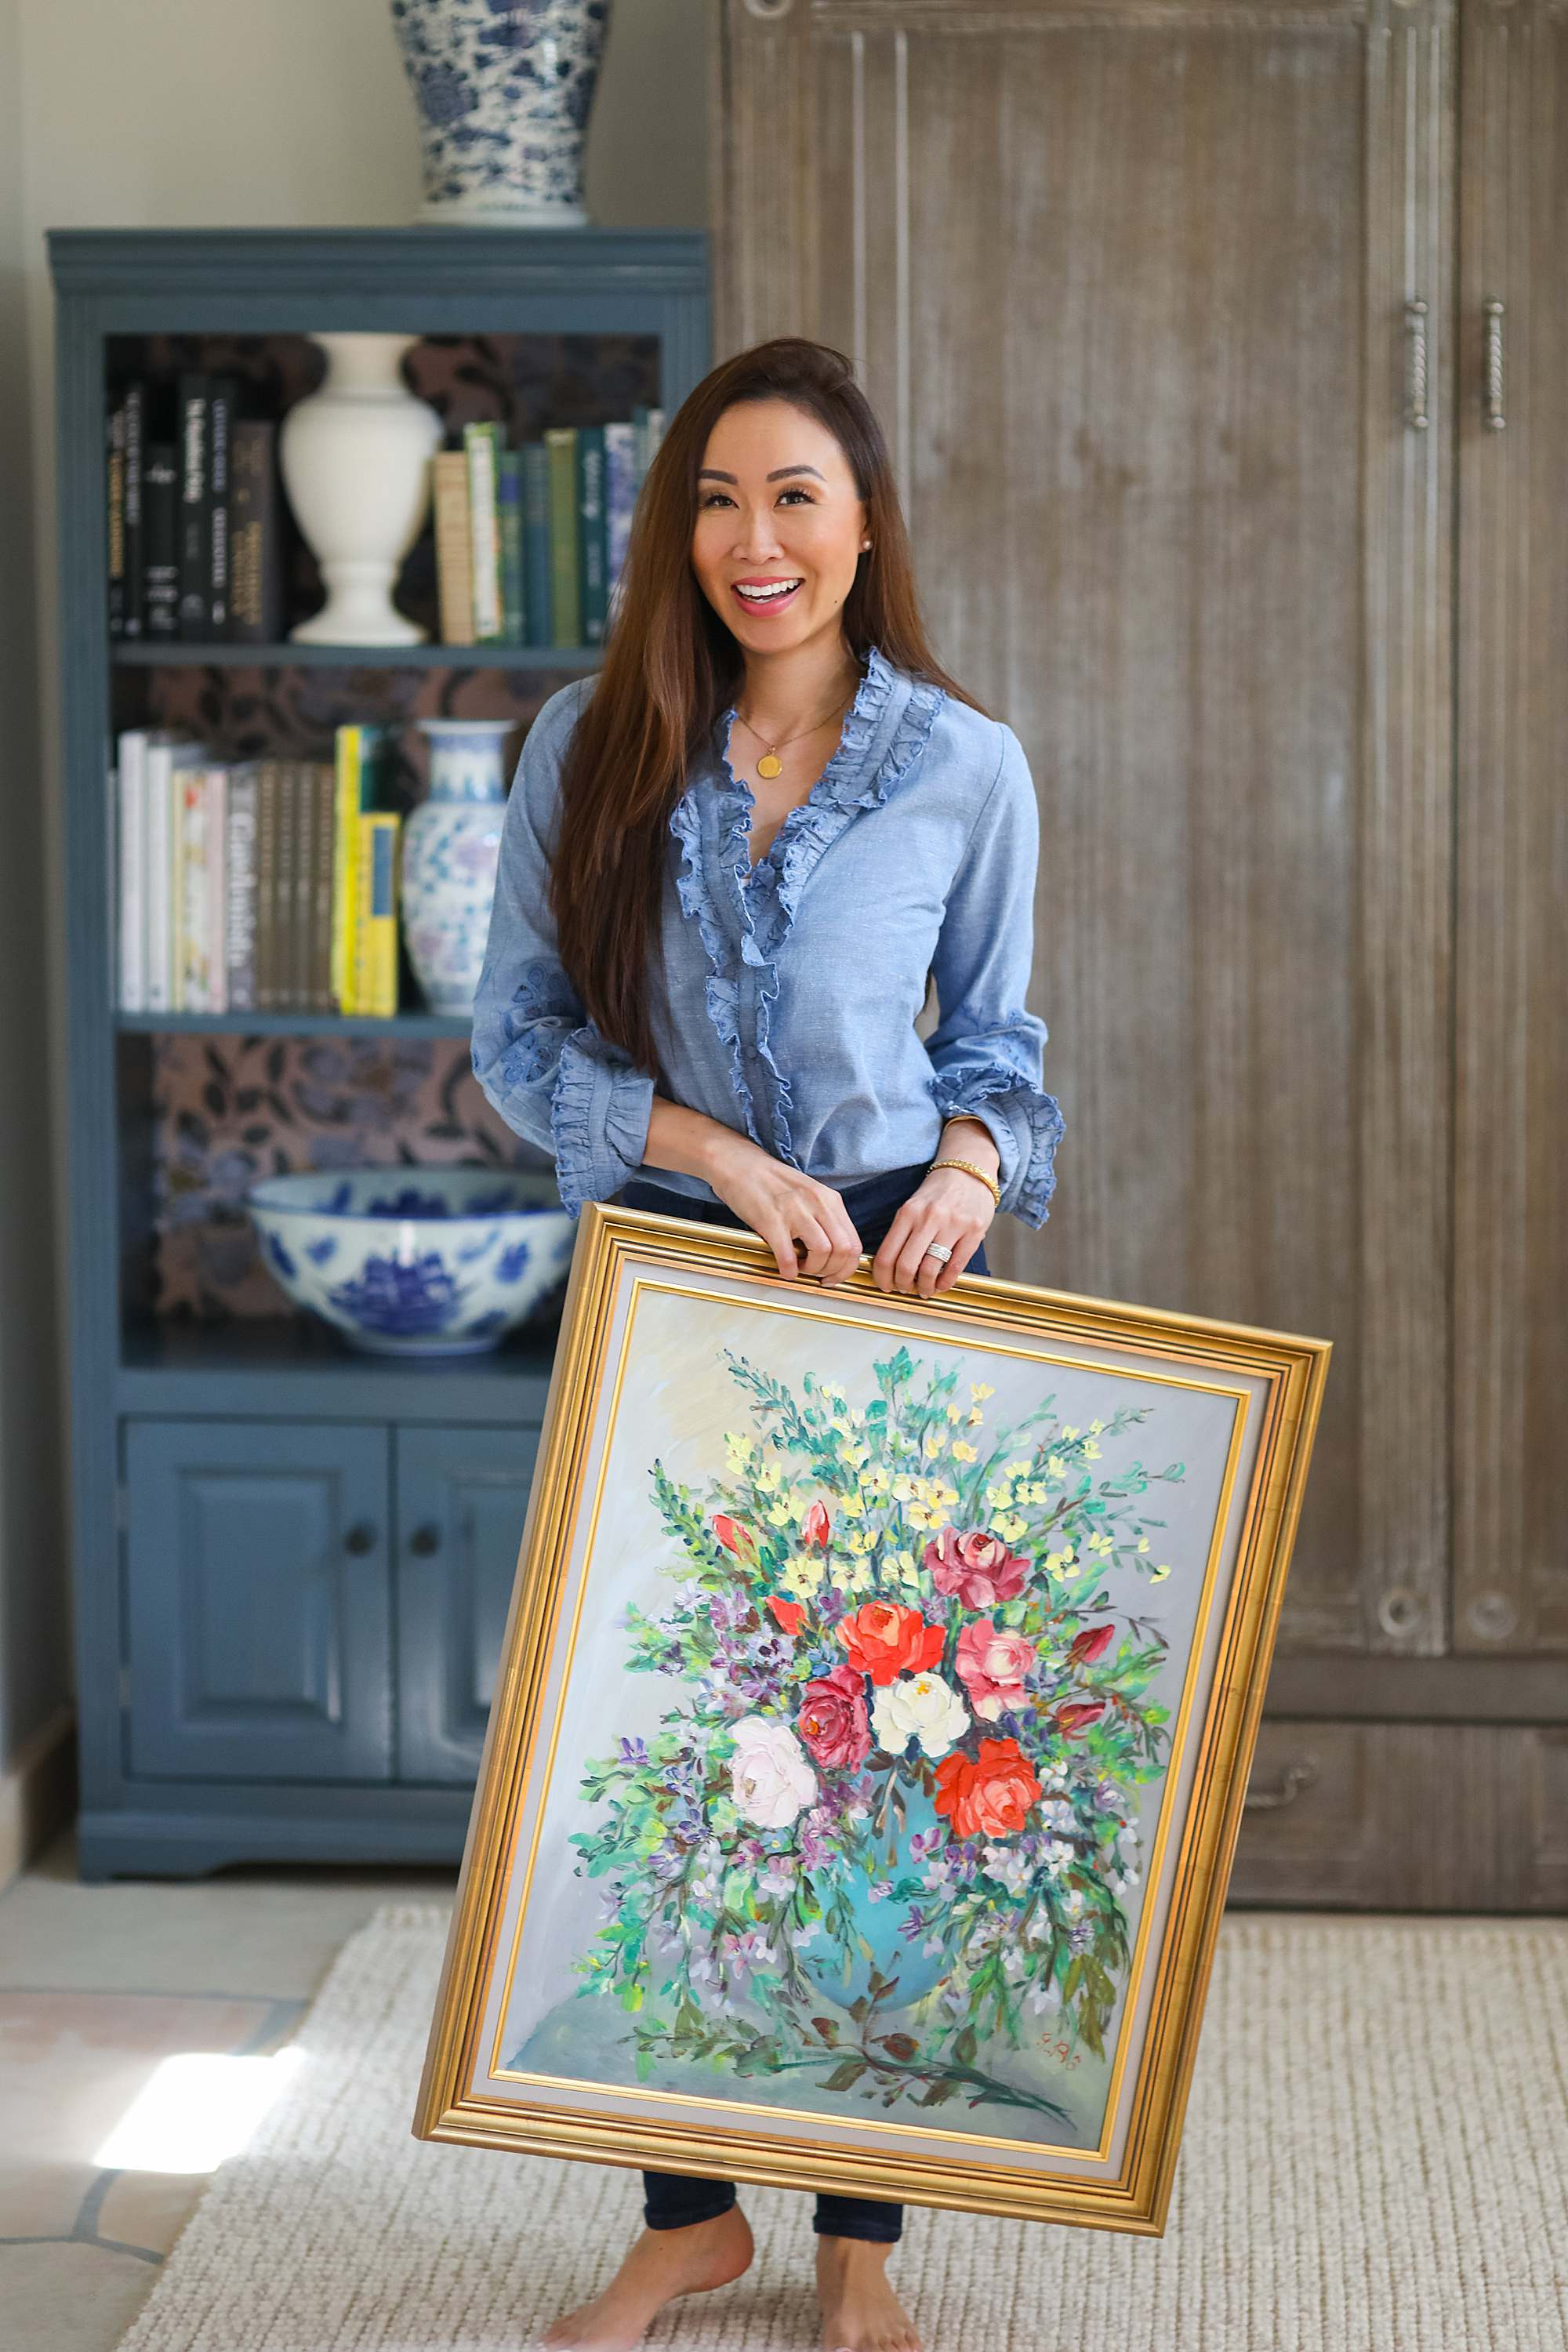 antiquing, thrifting, and buying new like at home goods, what do I like to buy and where // holding antique floral oil on canvas painting - home and lifestyle blogger